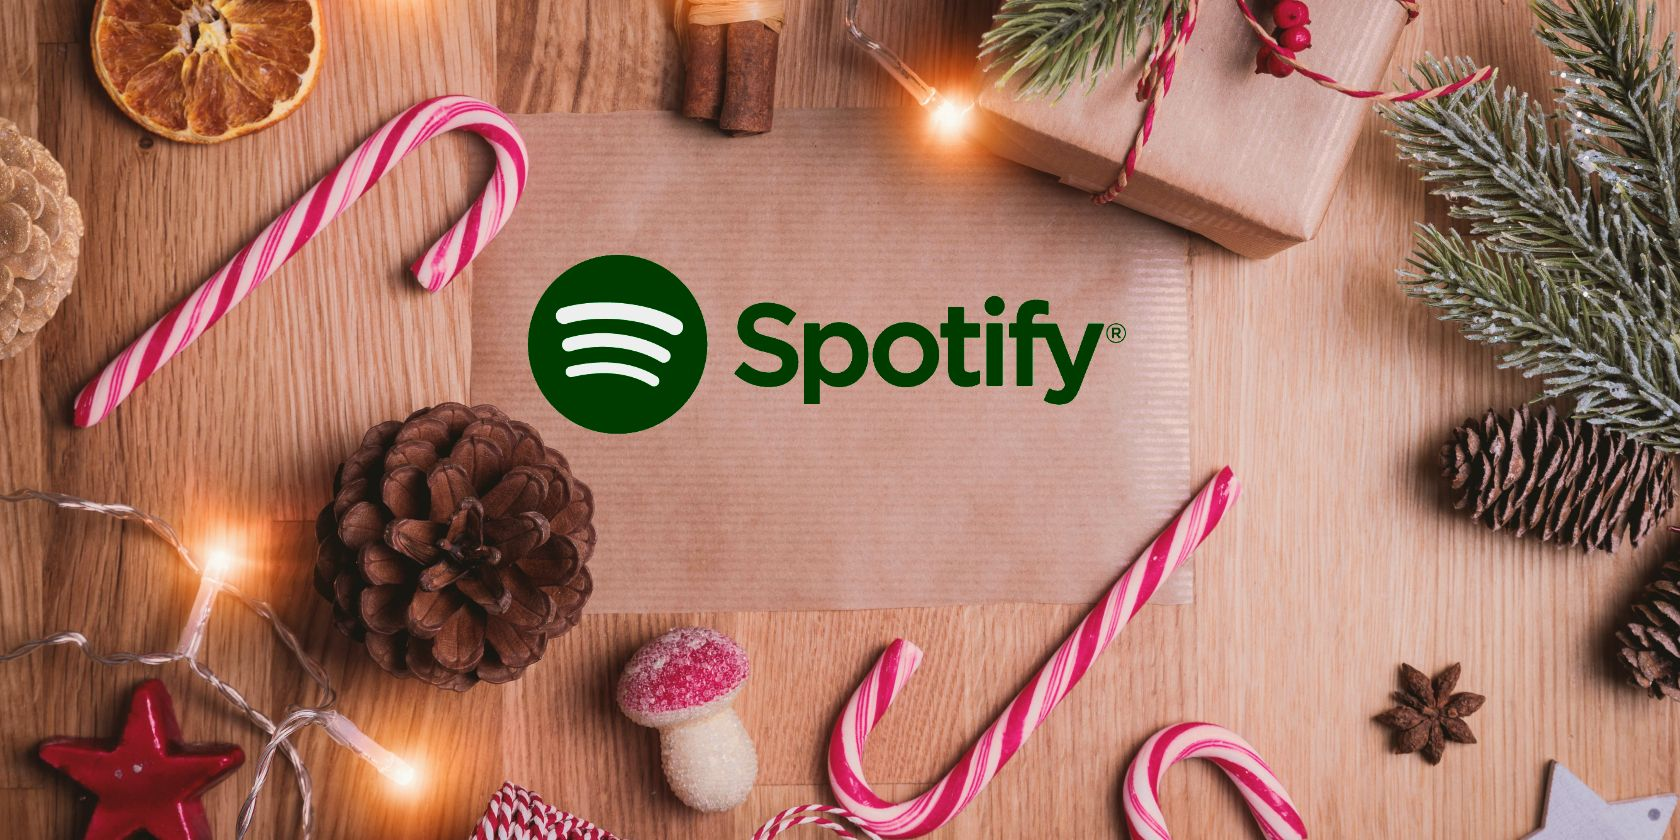 Spotify Tests Stories Feature for Its Christmas Playlist